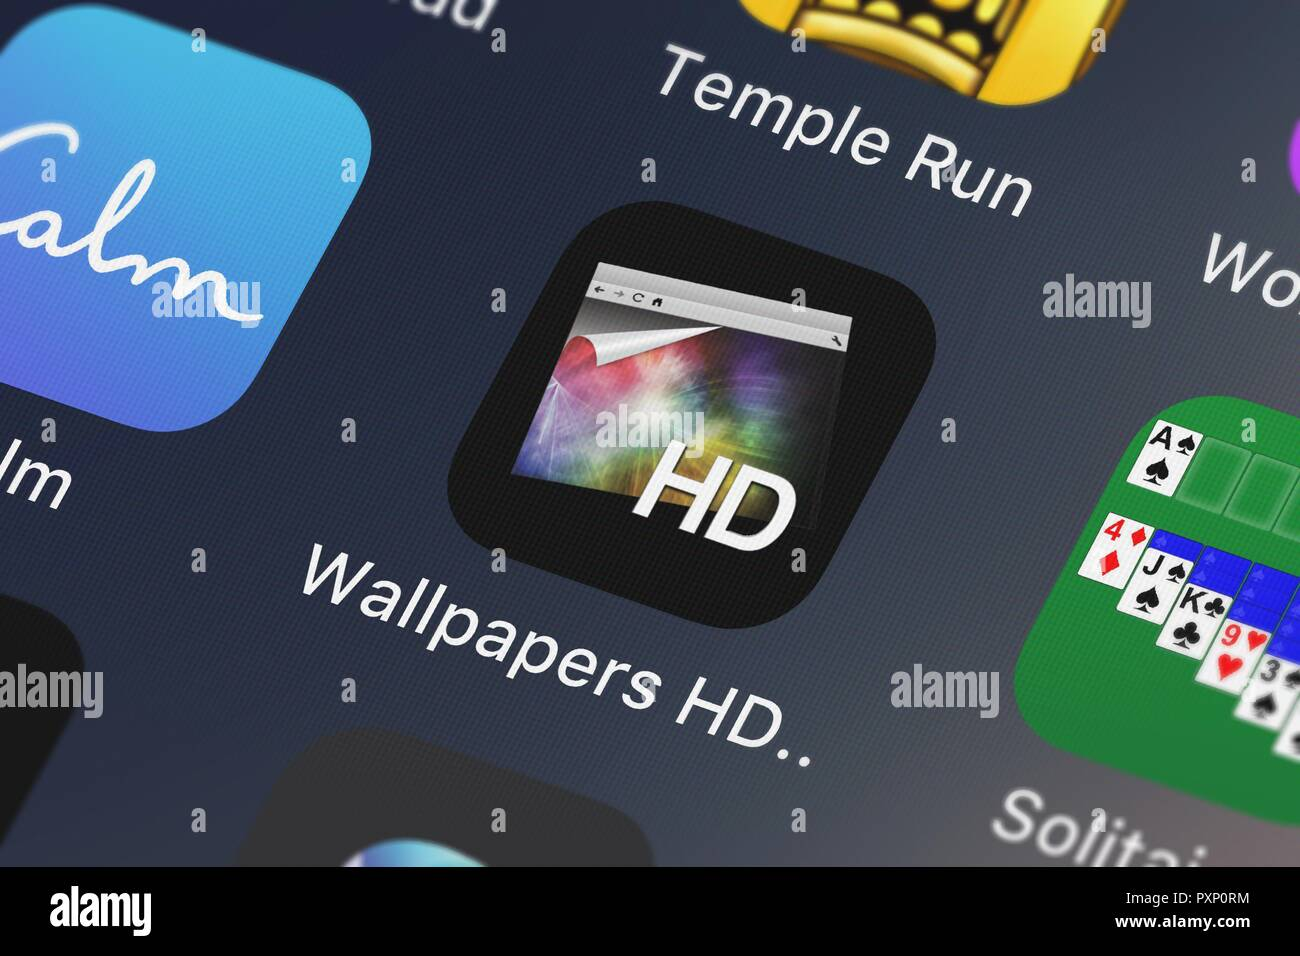 Wallpapers Hd Lite Photos Wallpapers Hd Lite Images Alamy